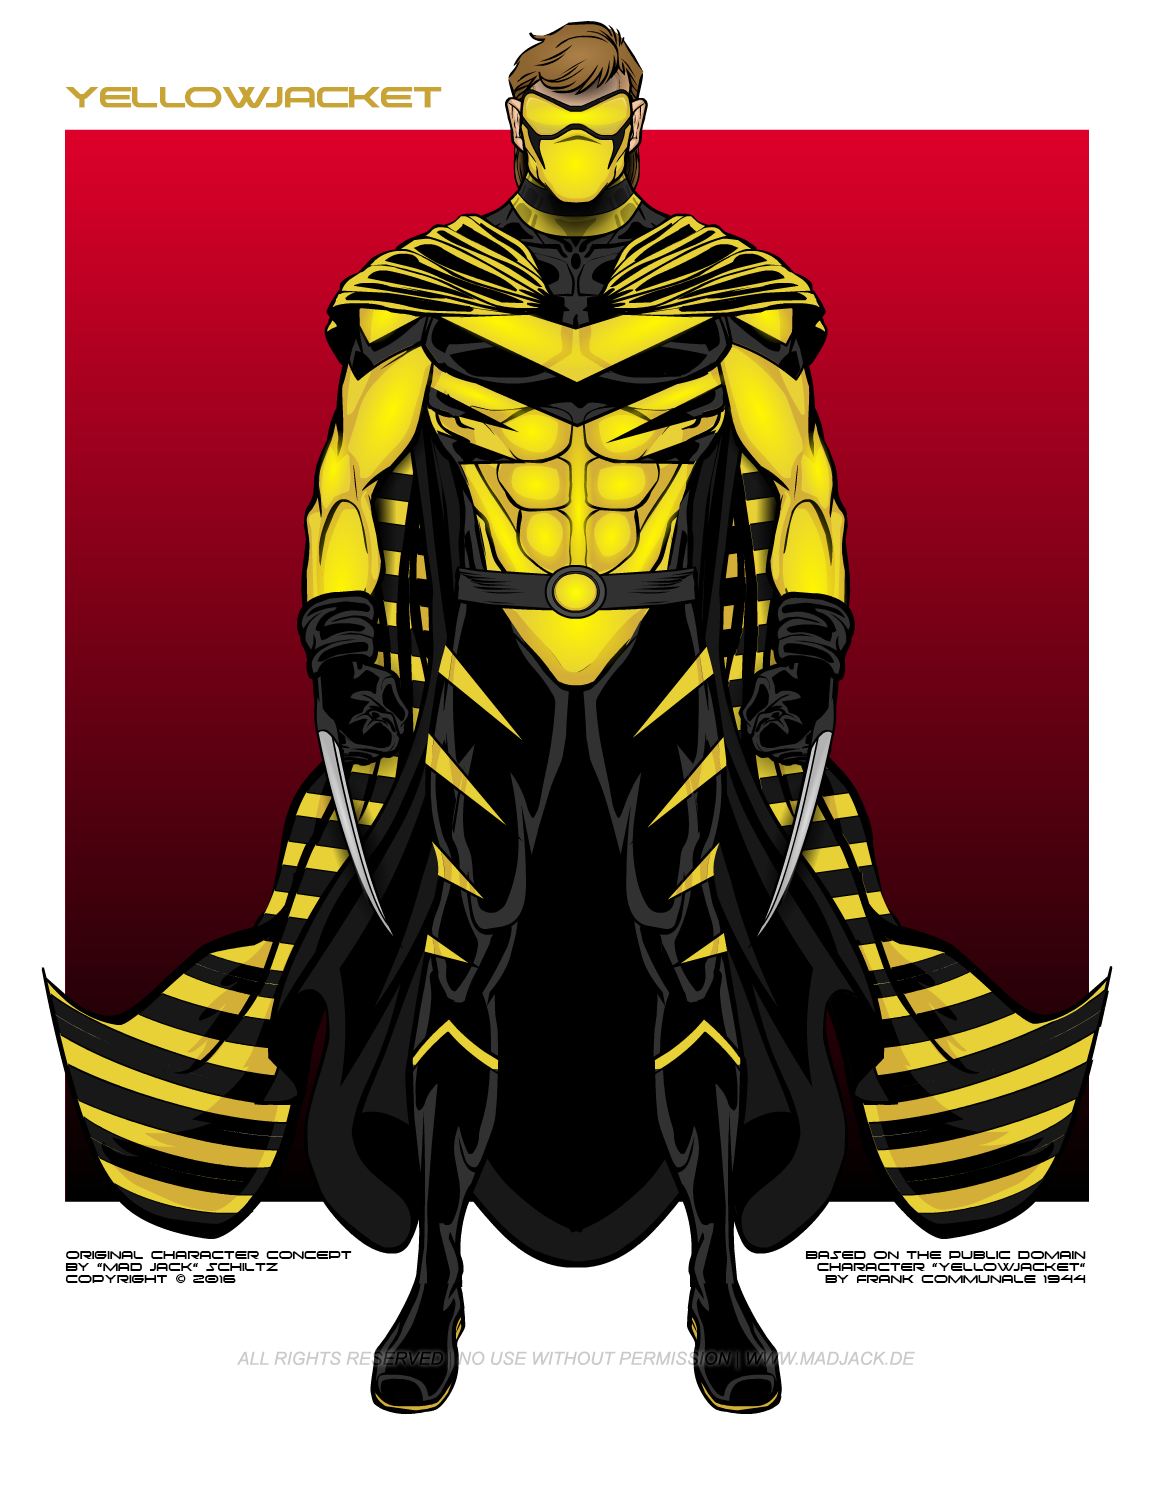 Yellowjacket Is Based On The Public Domain Character Yellowjacket By Frank Communale Pdsh Wikia Com Wiki Yellowjacket